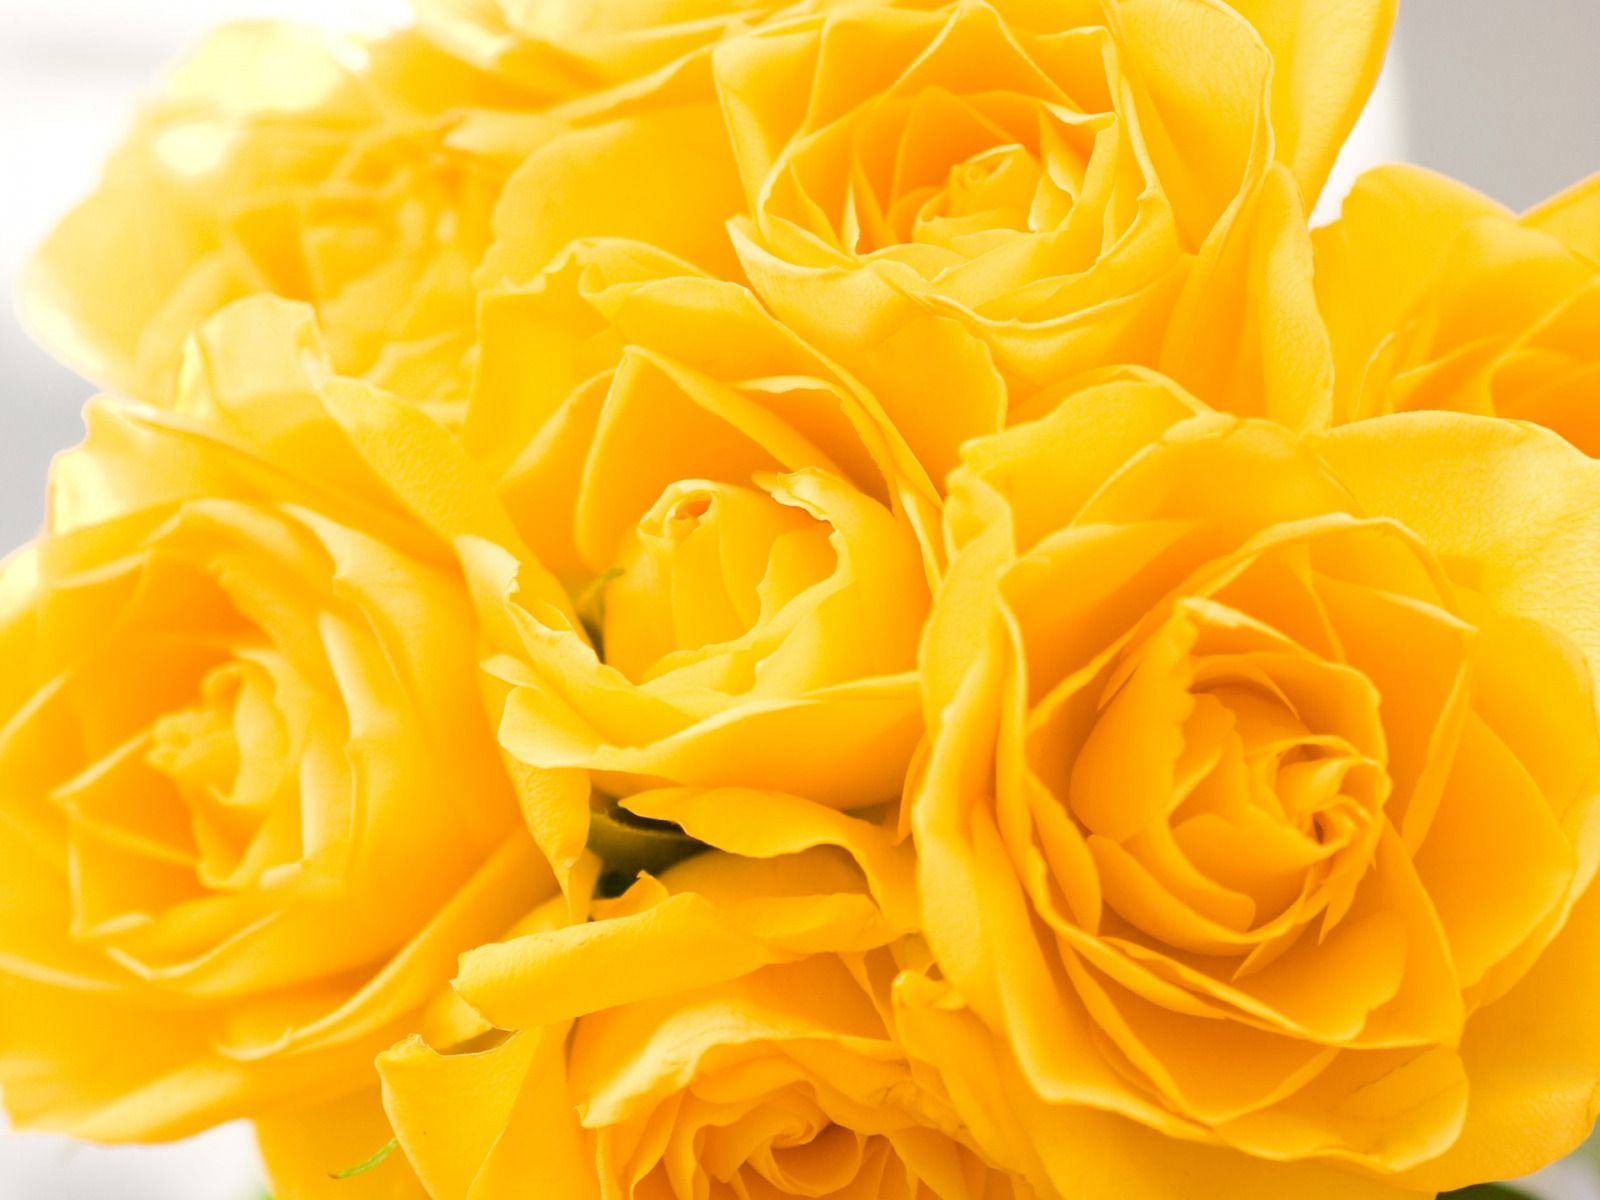 Yellow Roses Flower Wallpaper Read Full Article Http Webneel Com Wallpaper Beautiful Flowers Pictures Beautiful Flowers Wallpapers Yellow Flower Wallpaper